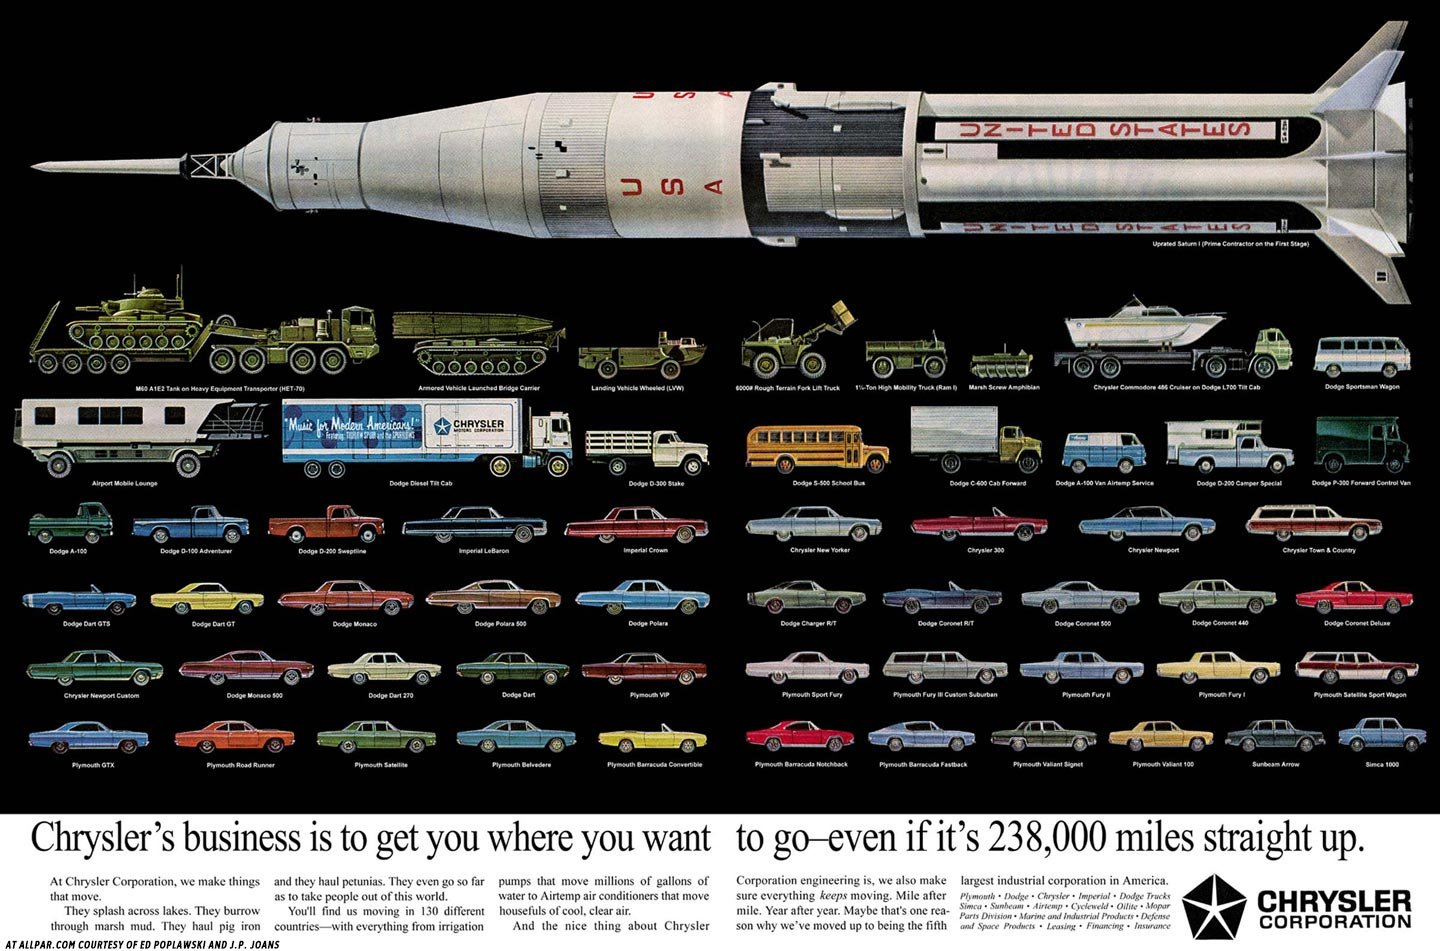 1968 missiles and such